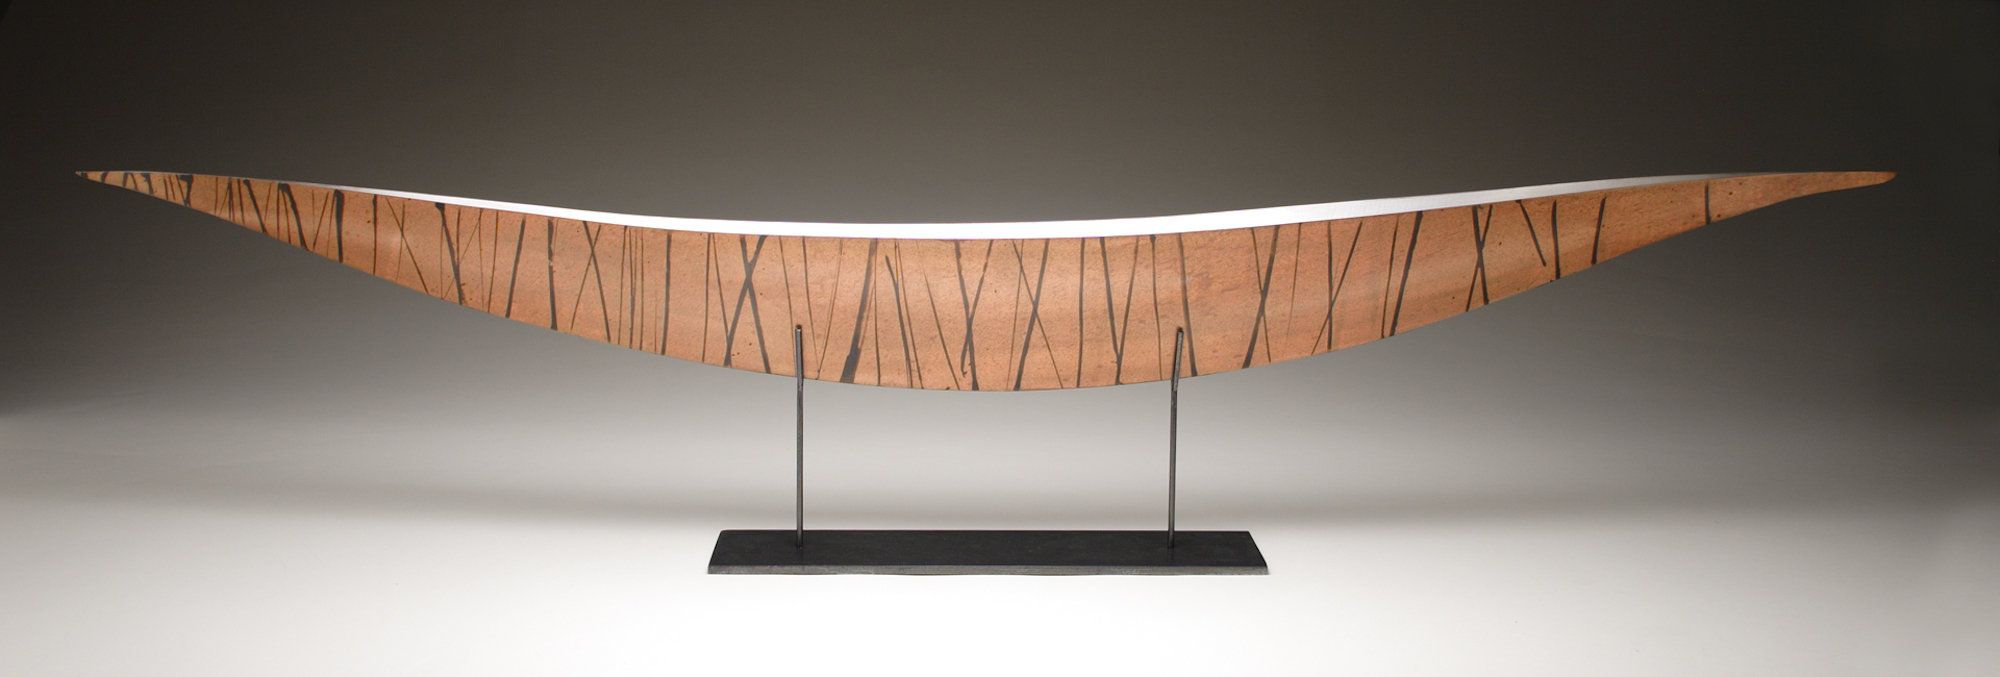 Copper Boat With Black Stripes By Ken Girardini And Julie